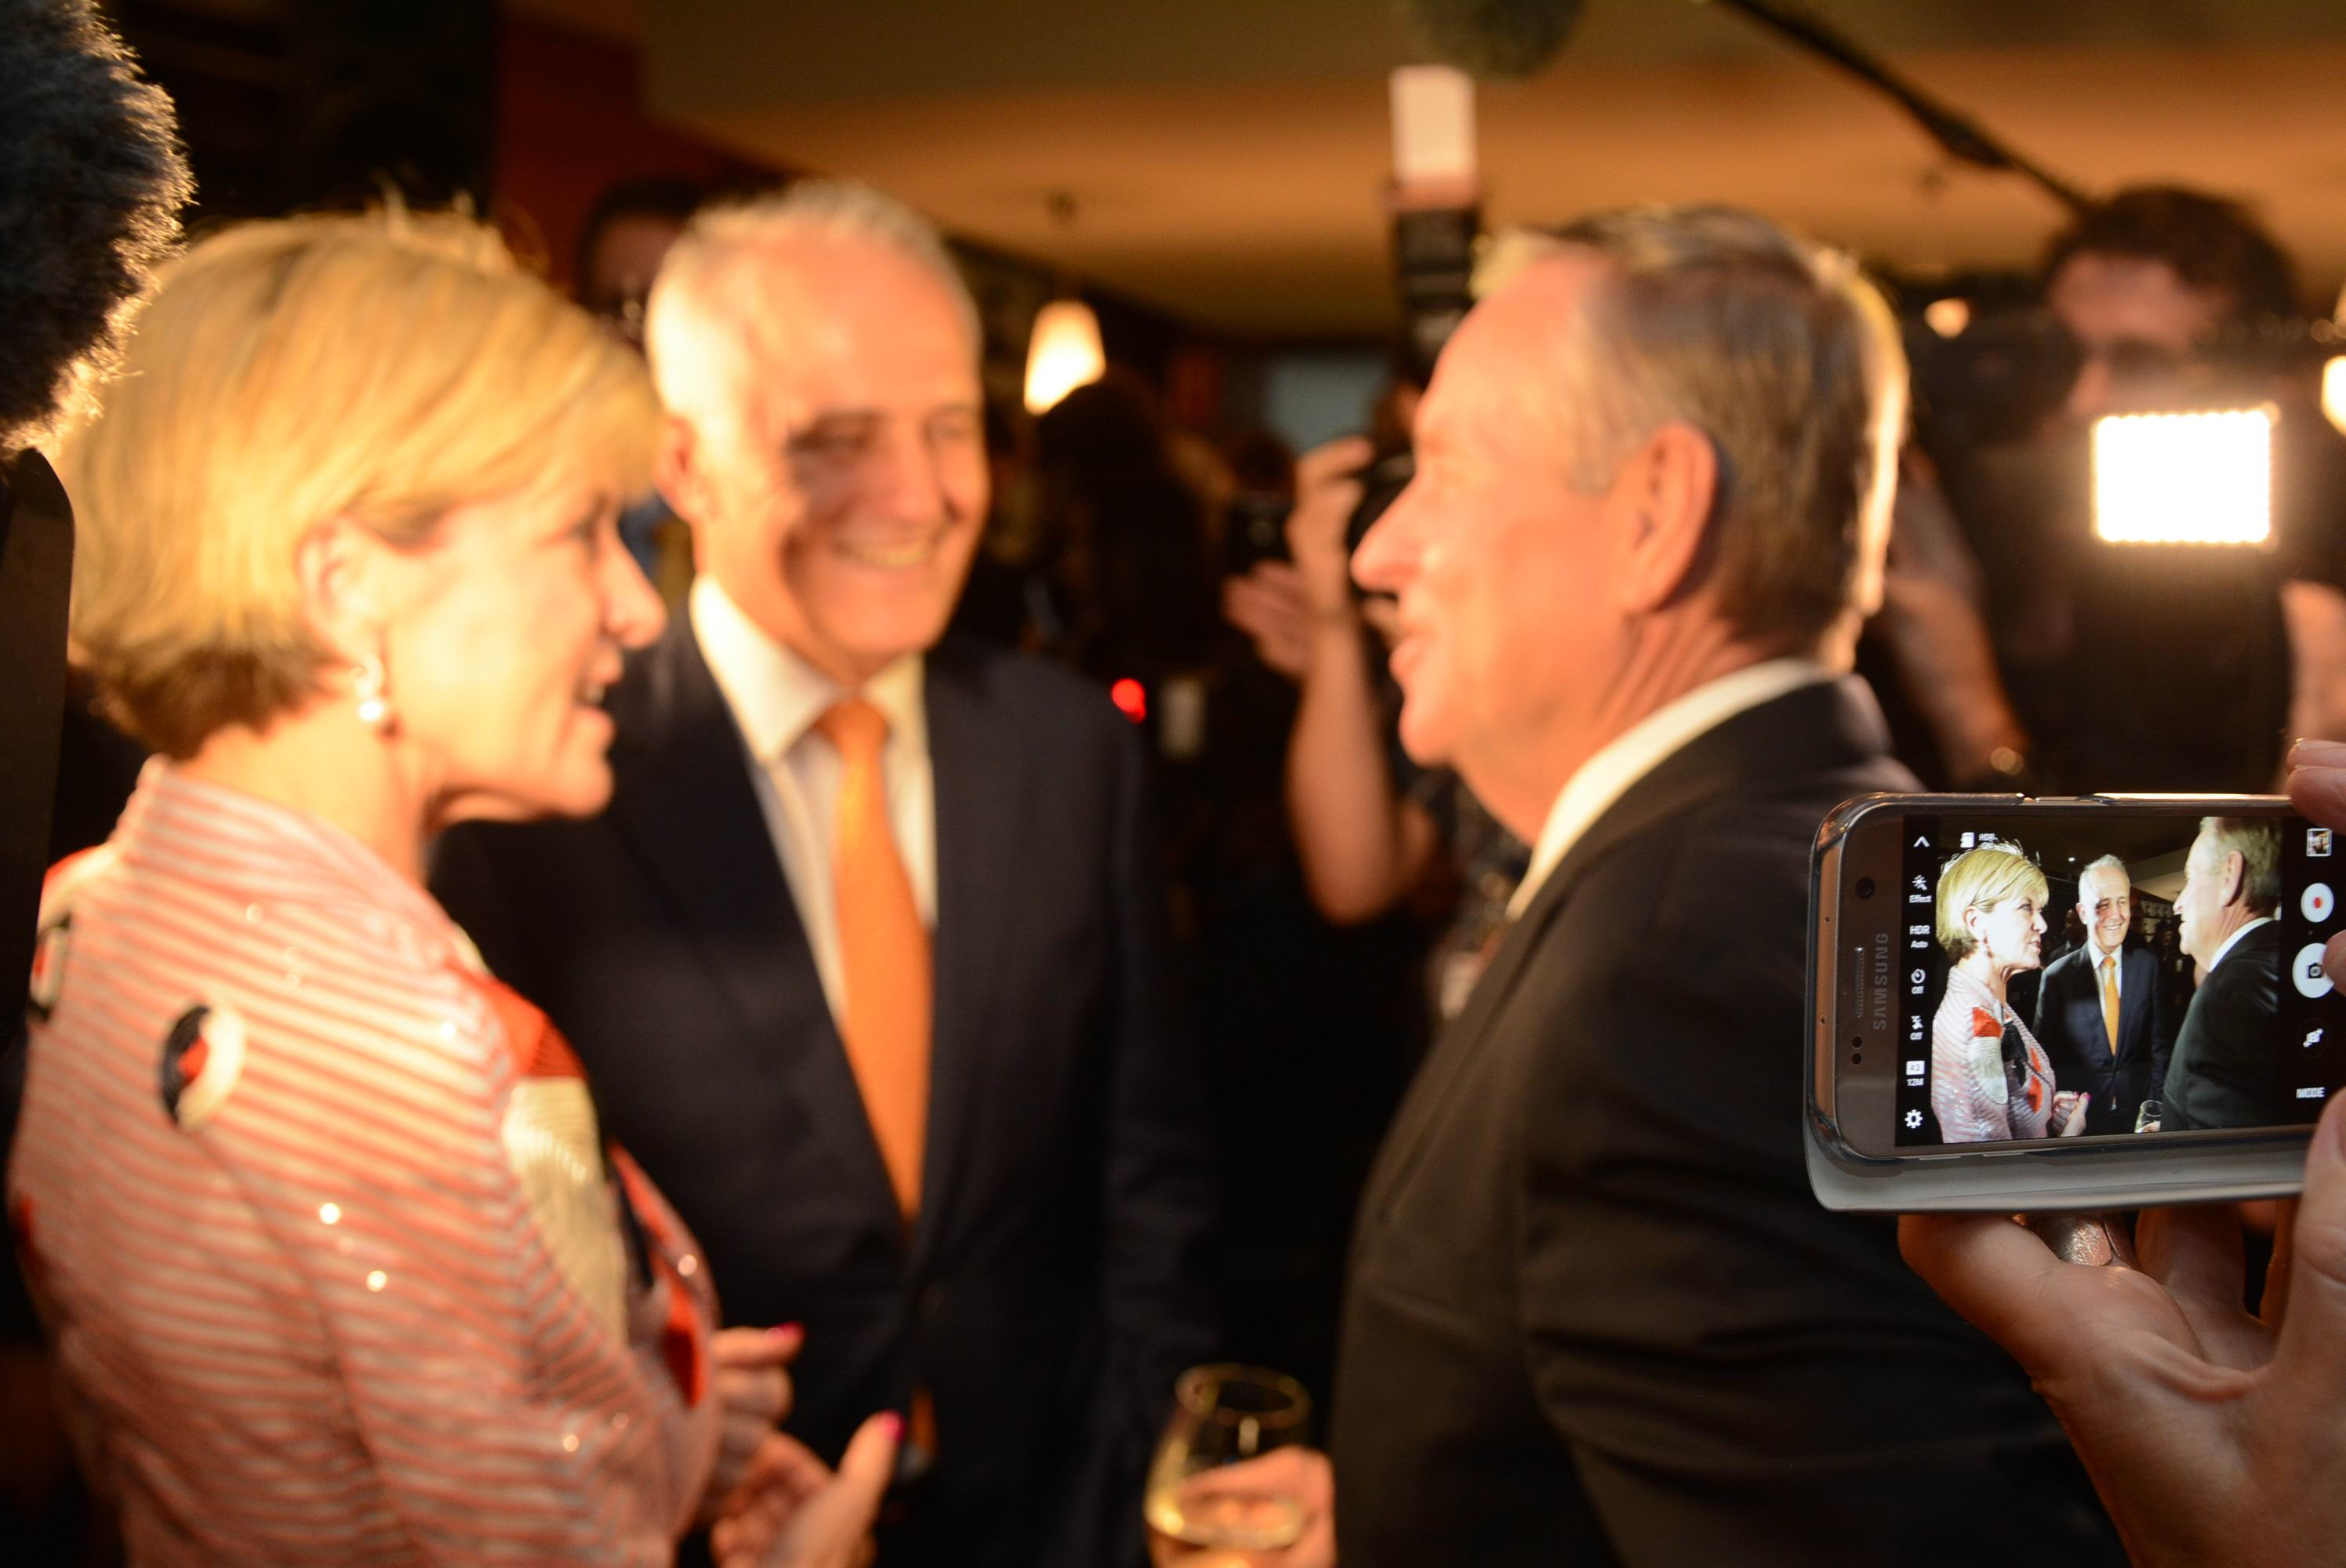 Julie Bishop's campaign launch brings Prime Minister Malcolm Turnbull and Premier Colin Barnett together at last